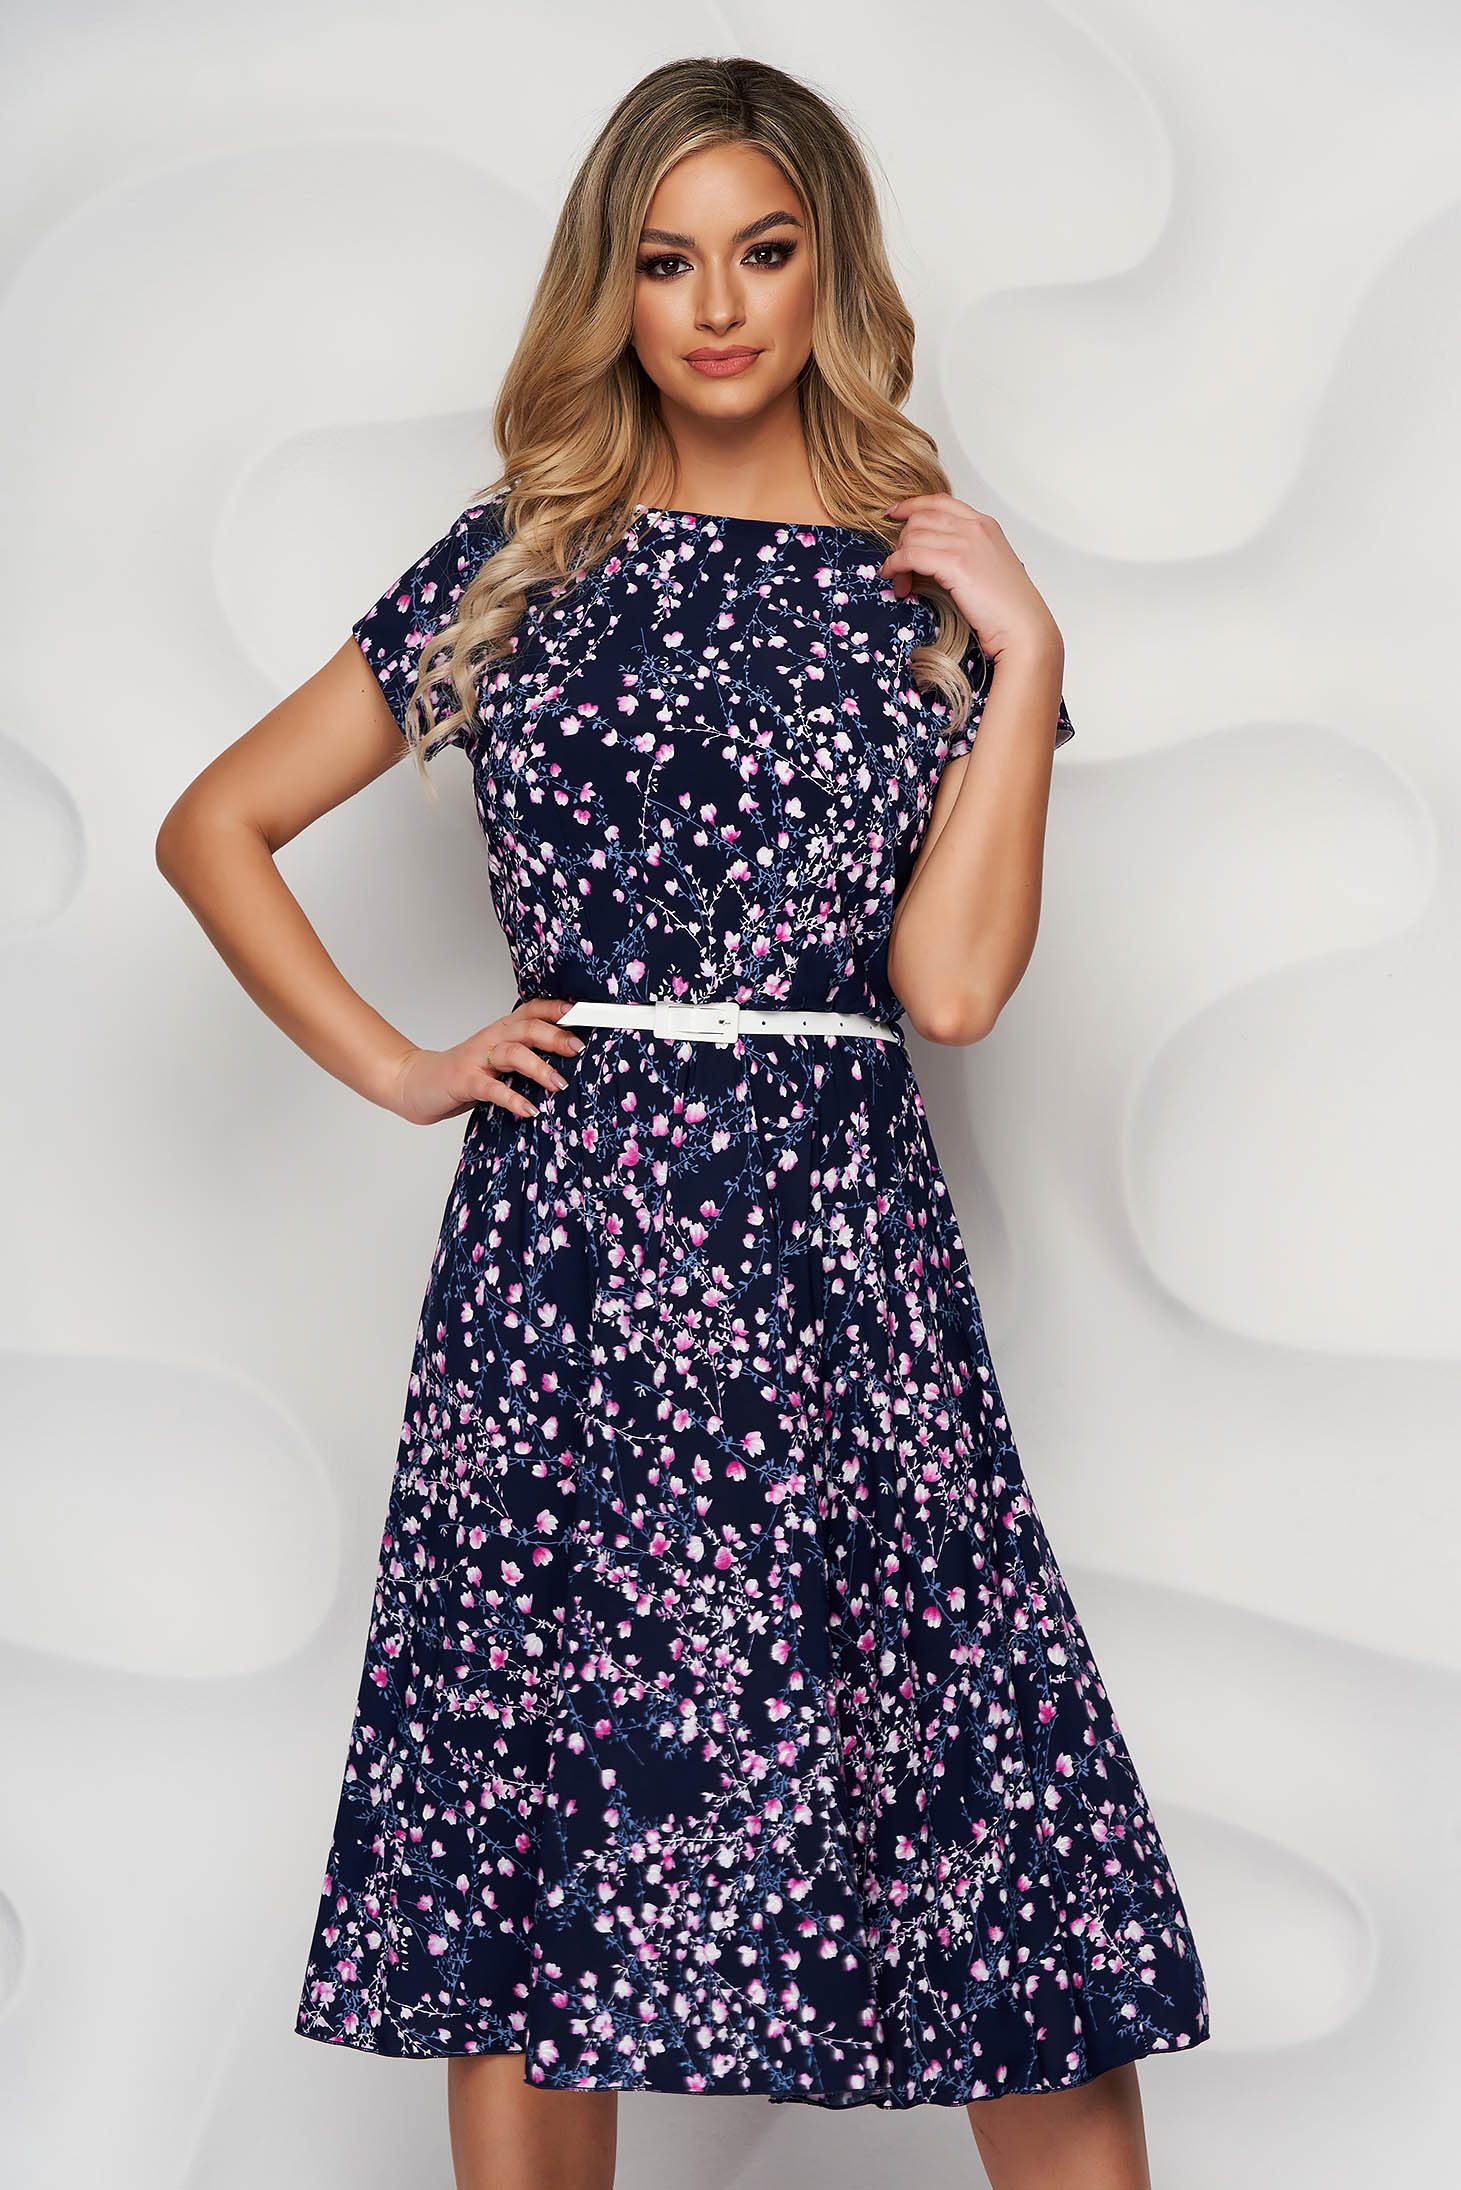 Darkblue dress with floral print cloche midi from elastic fabric accessorized with belt